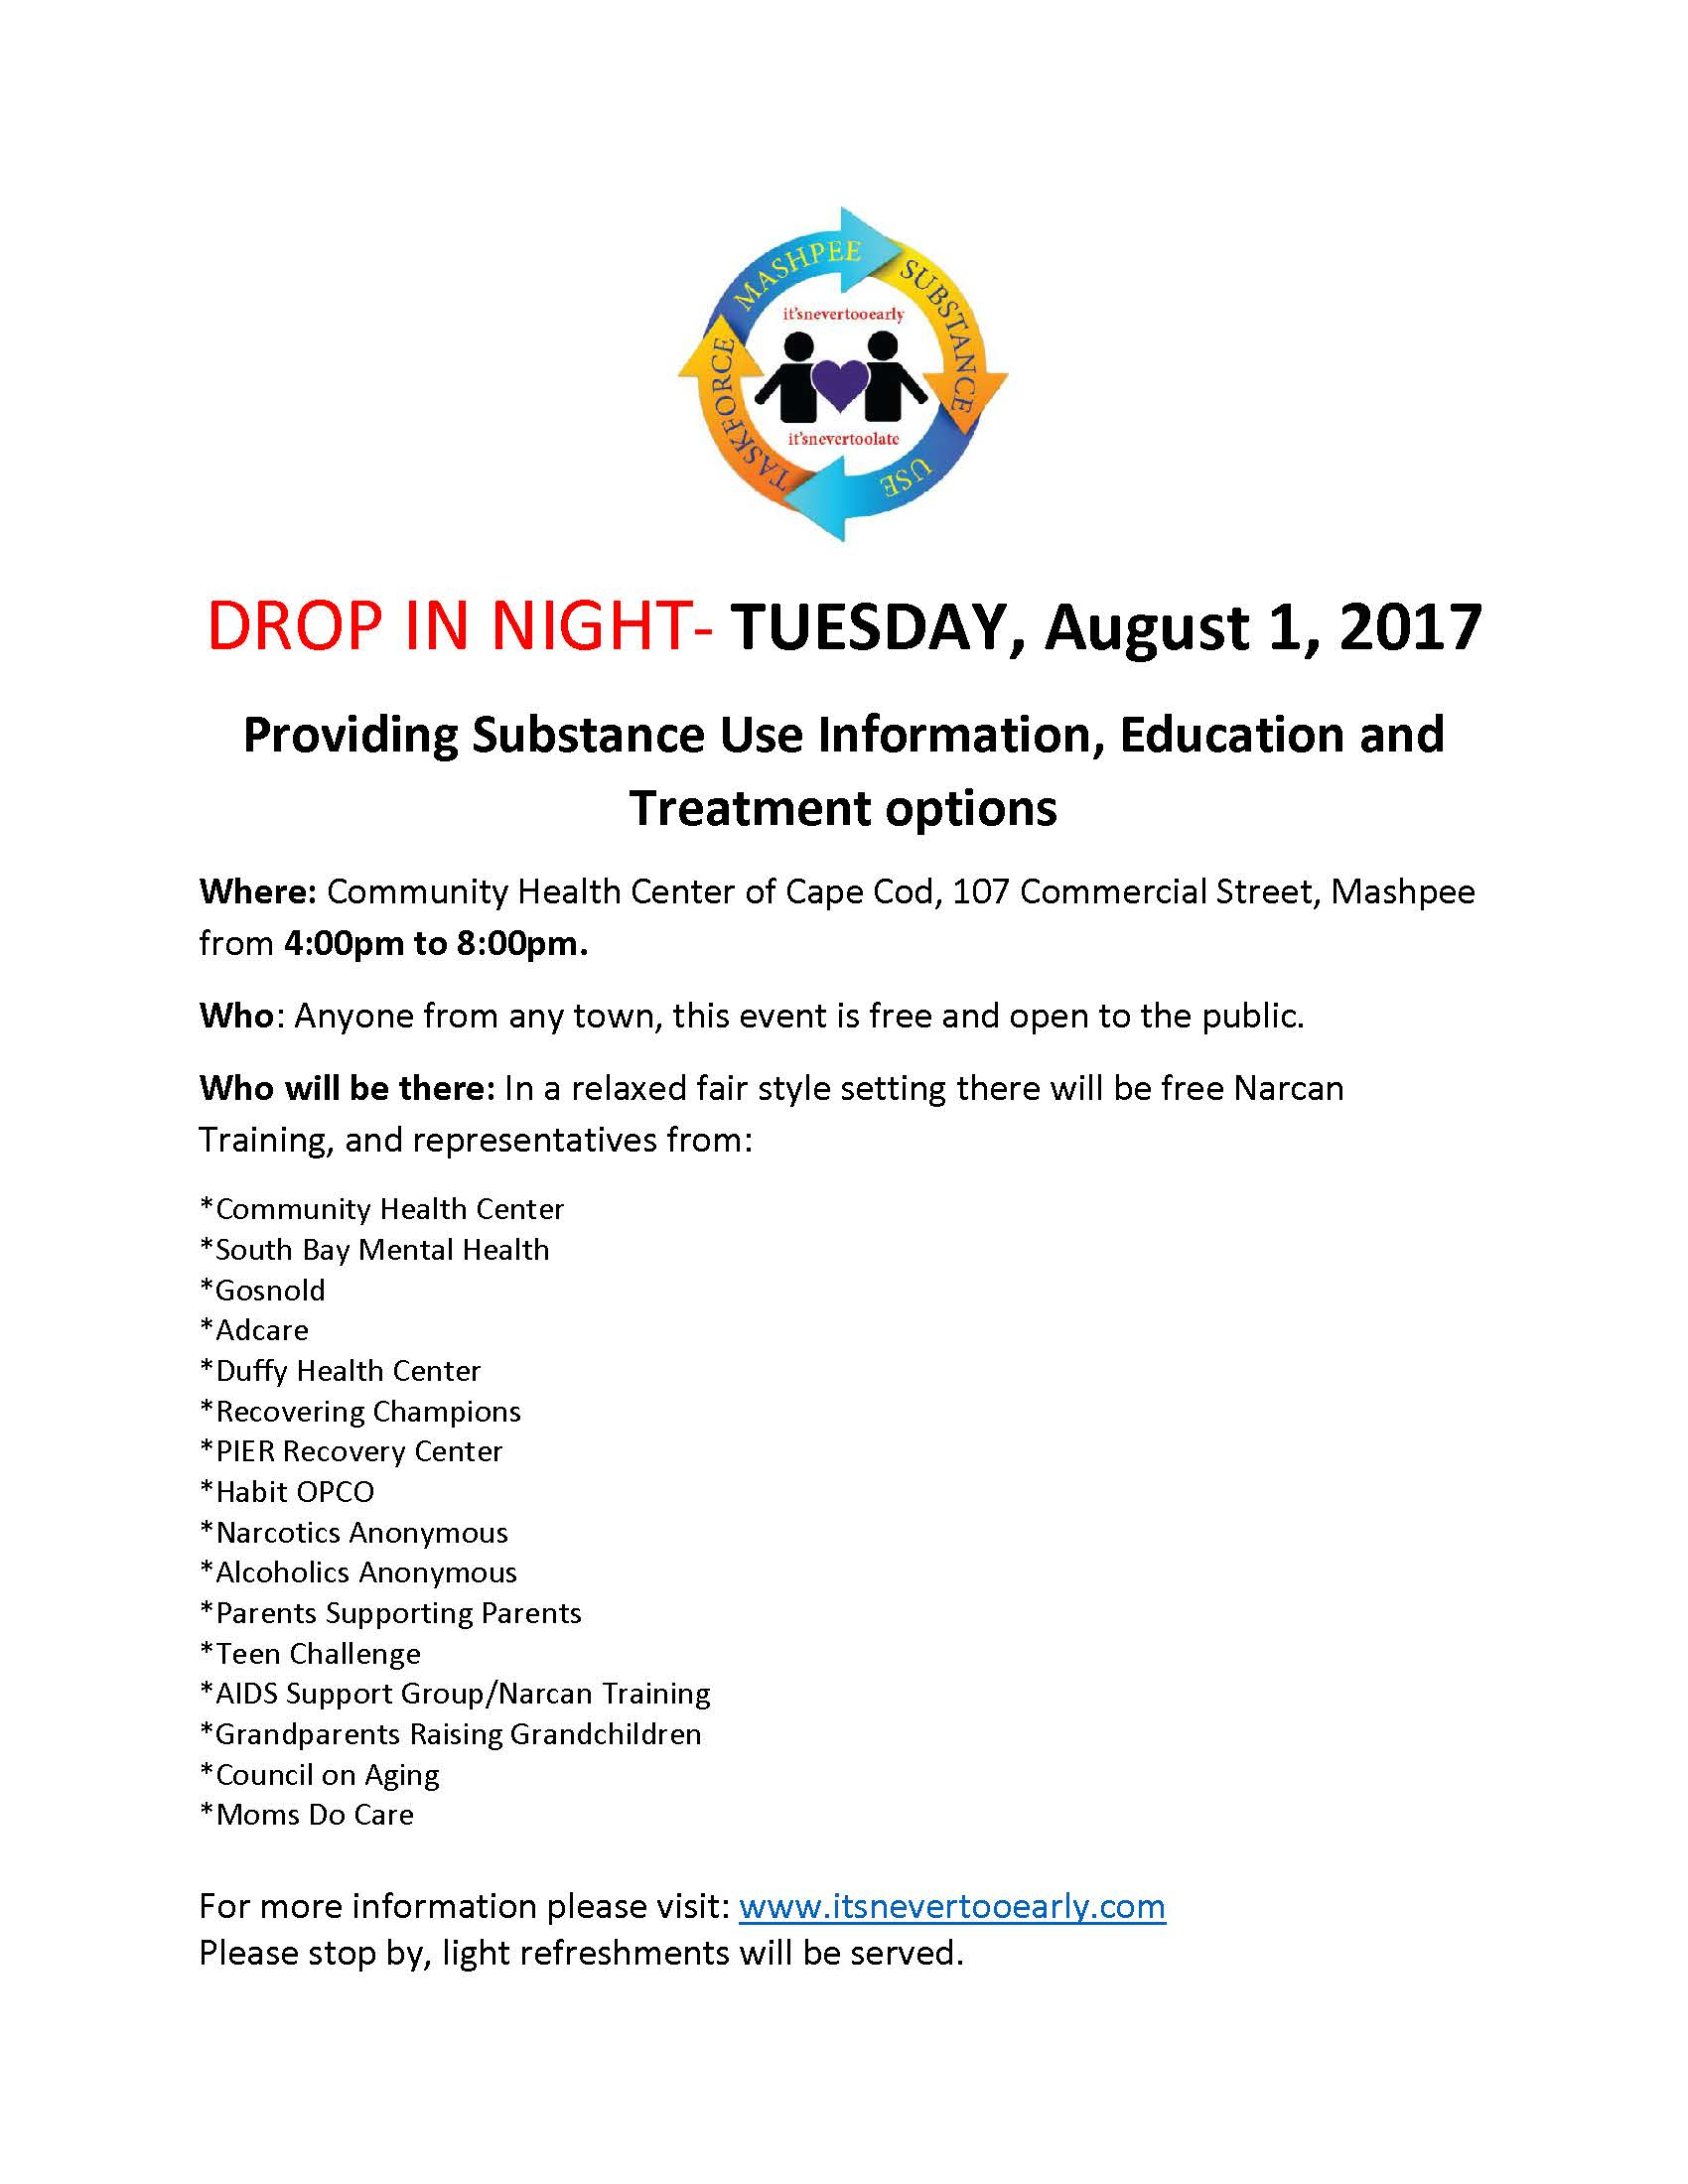 Drop in night information